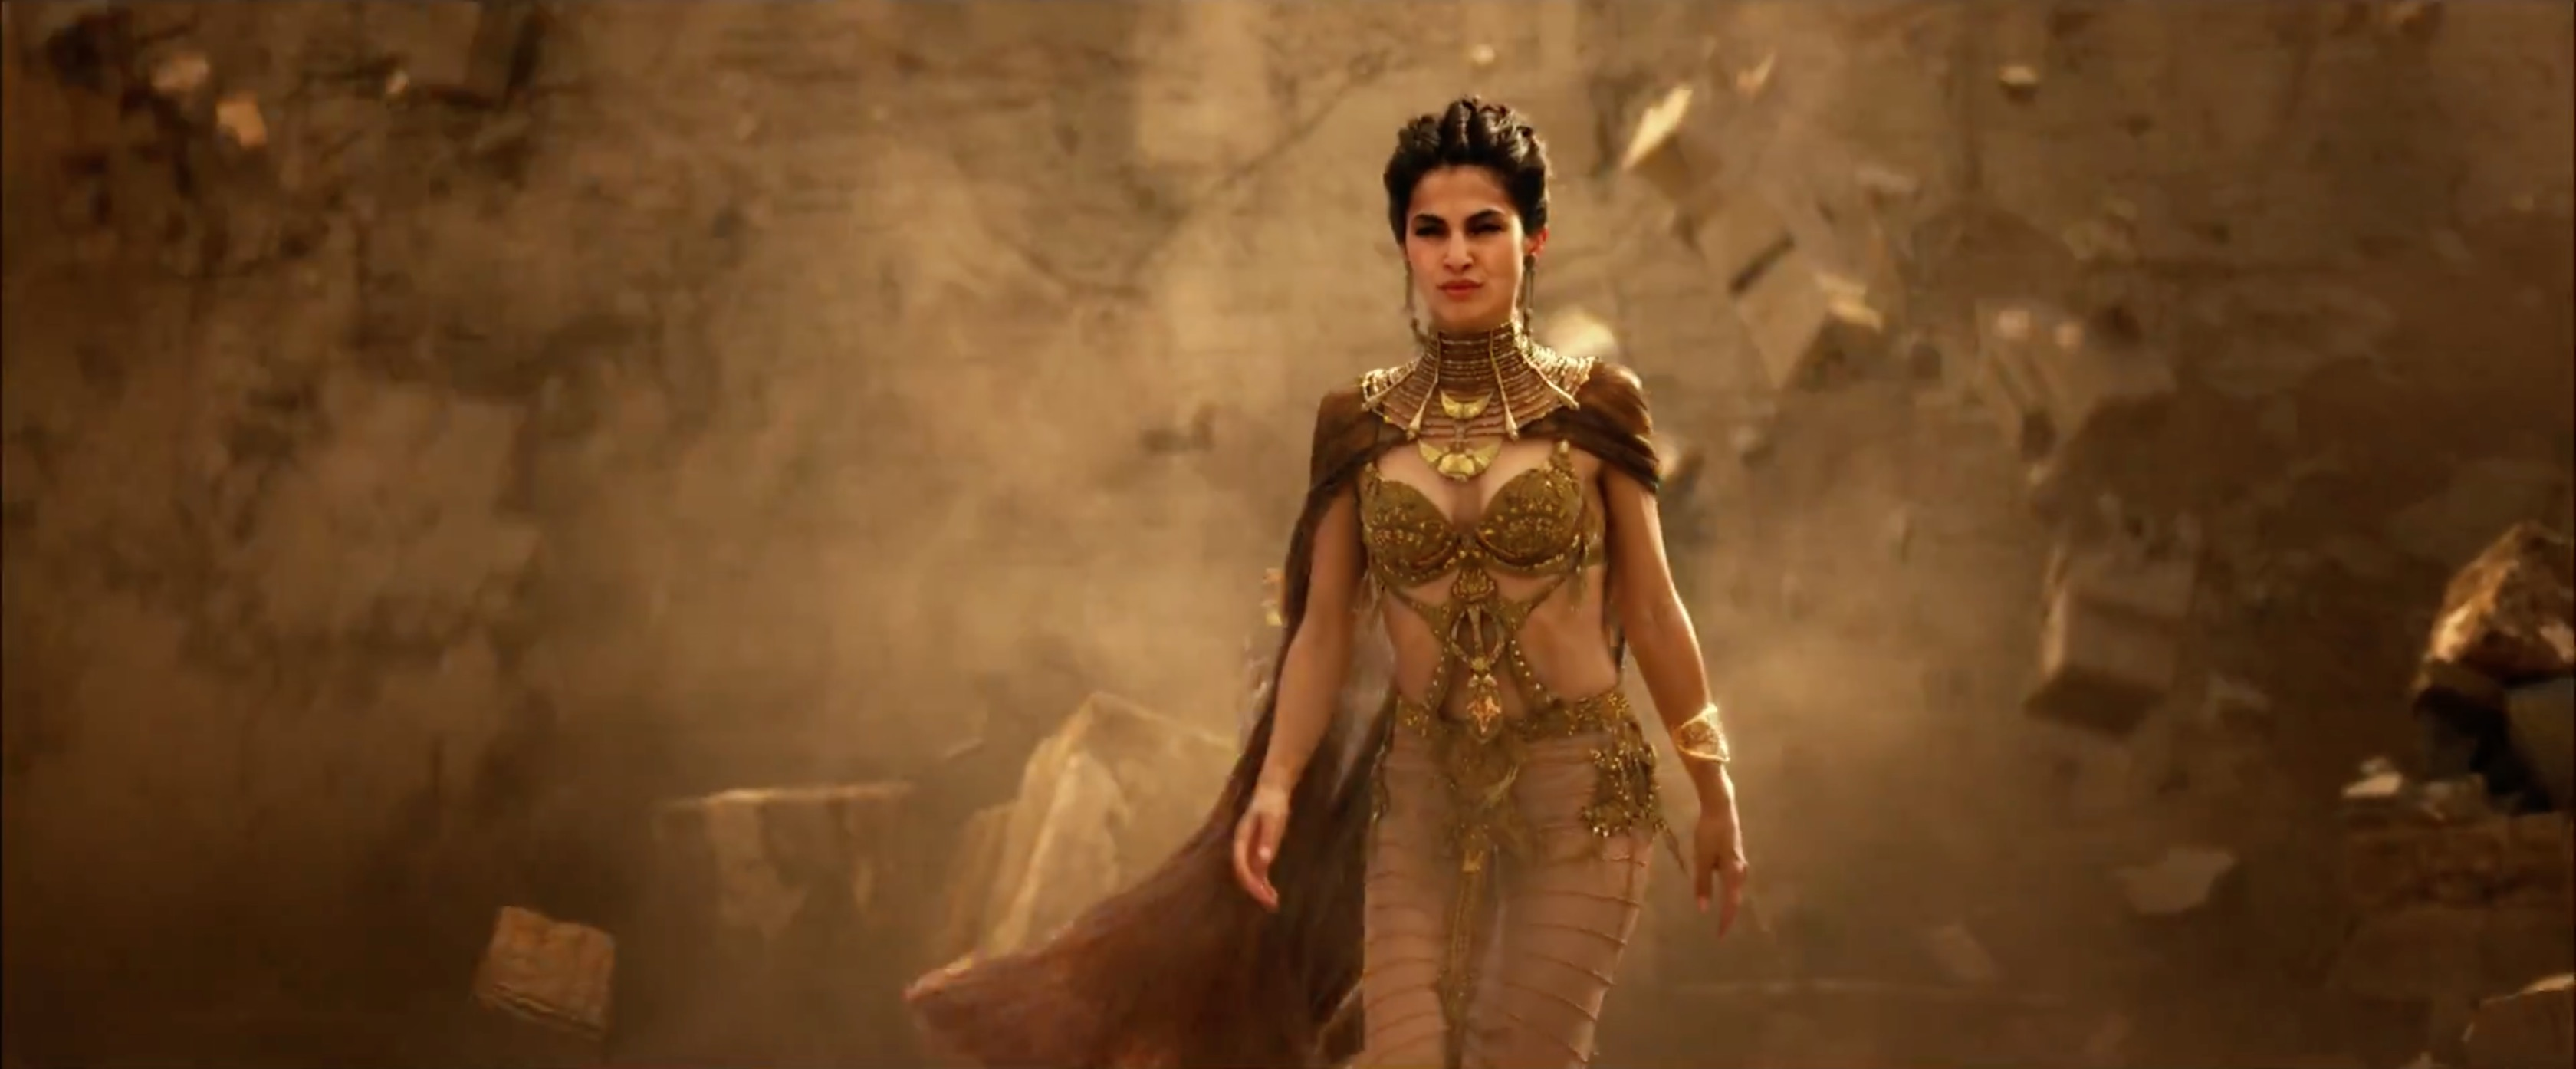 troy map with Godsofegypt on 985262 Mevsim Ege Aylardan Assos besides 40644 further Justice League 4 further Clyde 20Dunn 20Jr together with Titans 1.